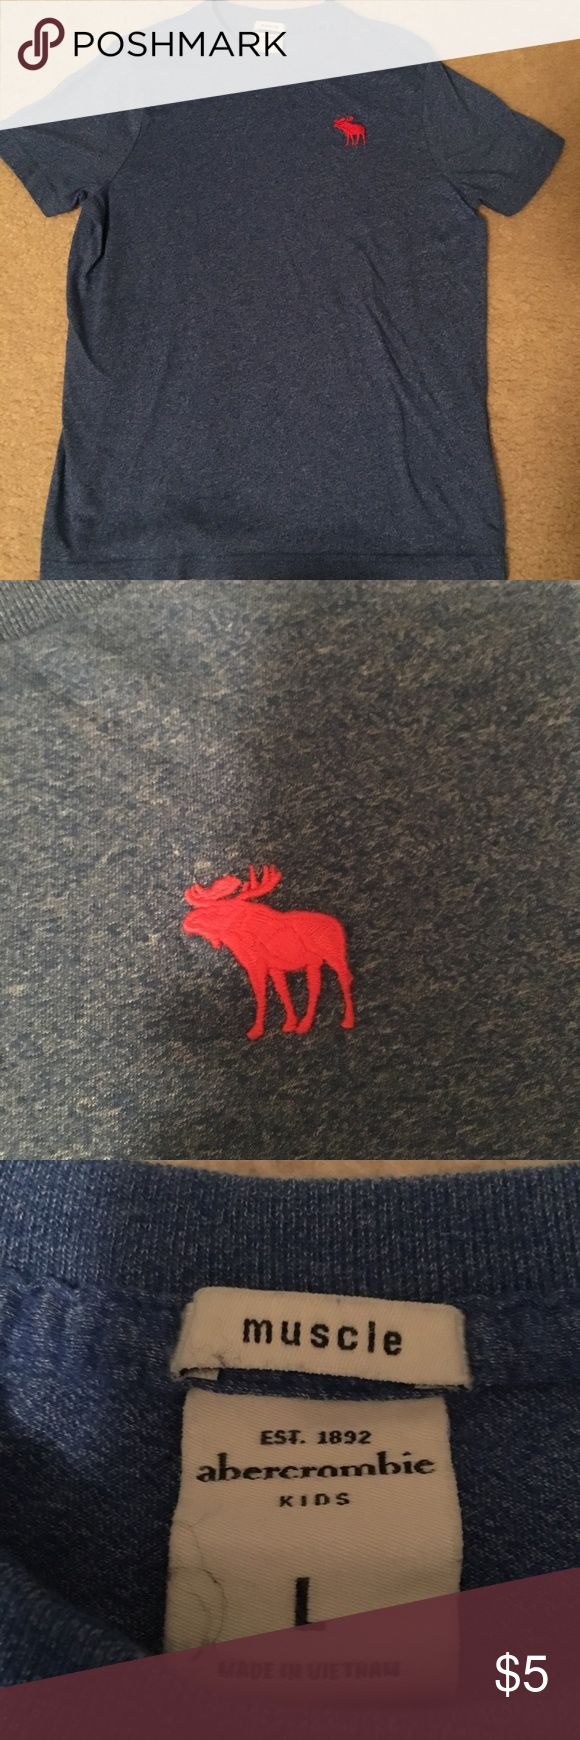 🆕abercrombie kids icon tee Boys abercrombie kids icon tee in blue. Signature moose in red. Good condition, some visible wear/pilling   ➳SAME OR NEXT DAY SHIPPING                                        ➳No trades, thank you!  ➳Make me an offer! ➳Lowballs declined ➳Ask questions BEFORE purchasing! abercrombie kids Shirts & Tops Tees - Short Sleeve